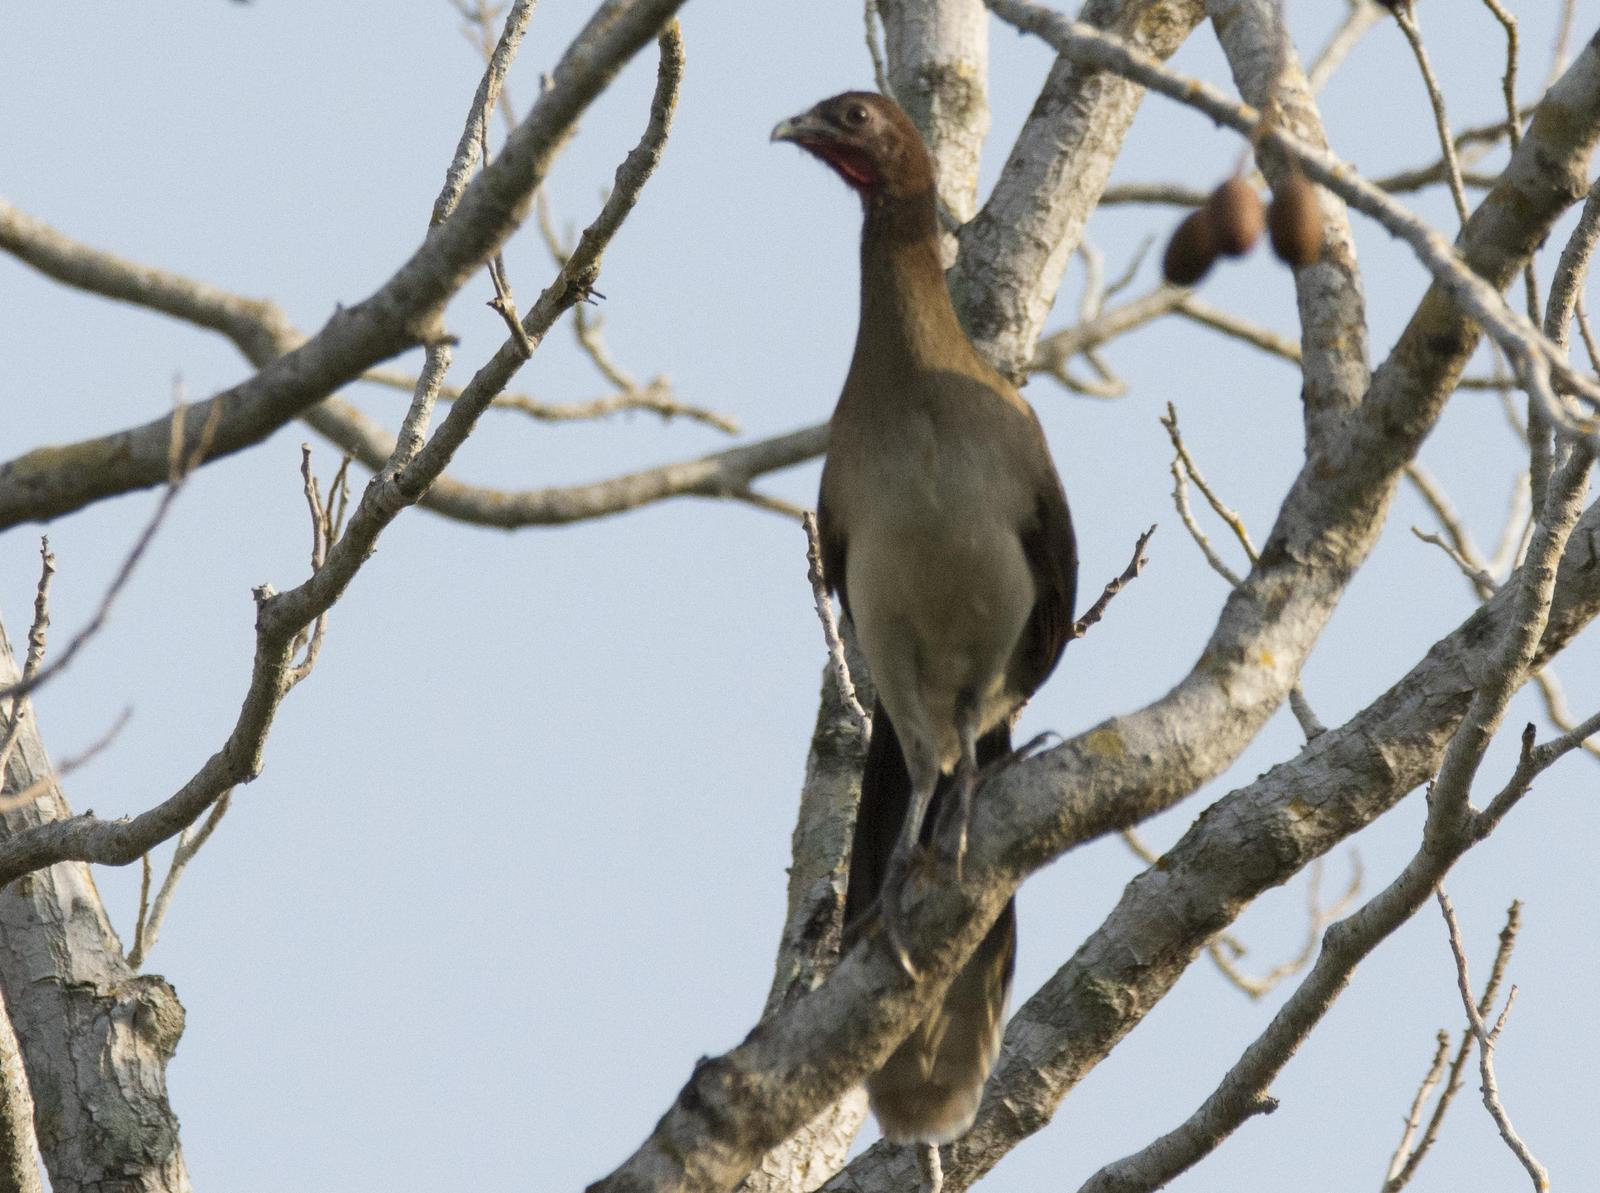 Chestnut-winged Chachalaca Photo by Jacob Zadik